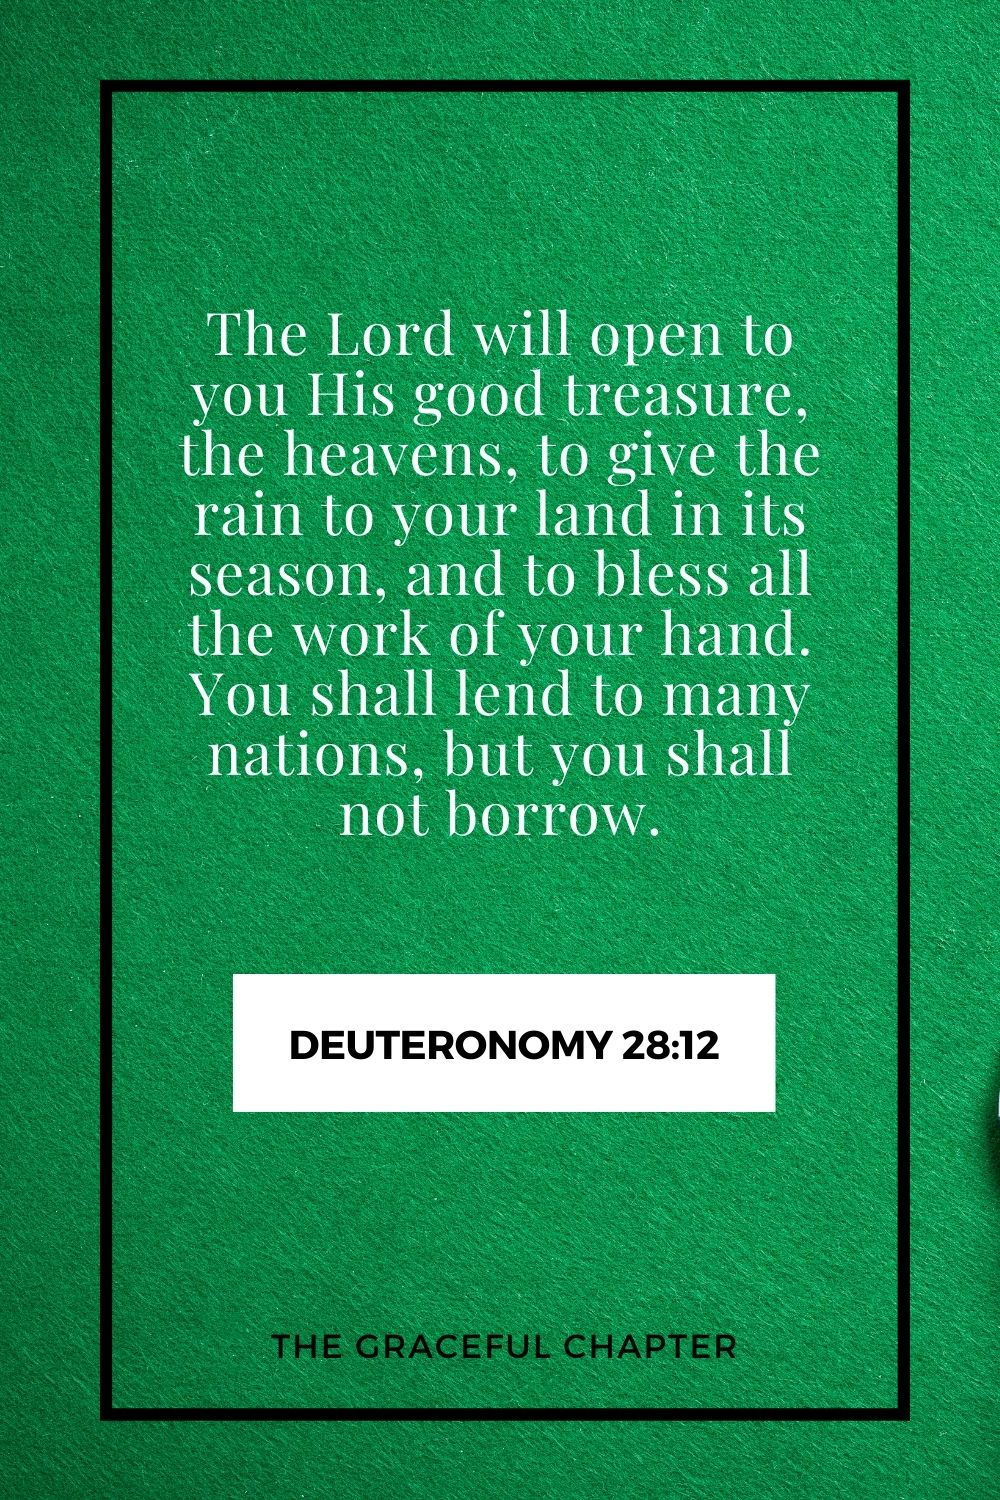 The Lord will open to you His good treasure, the heavens, to give the rain to your land in its season, and to bless all the work of your hand. You shall lend to many nations, but you shall not borrow. Deuteronomy 28:12